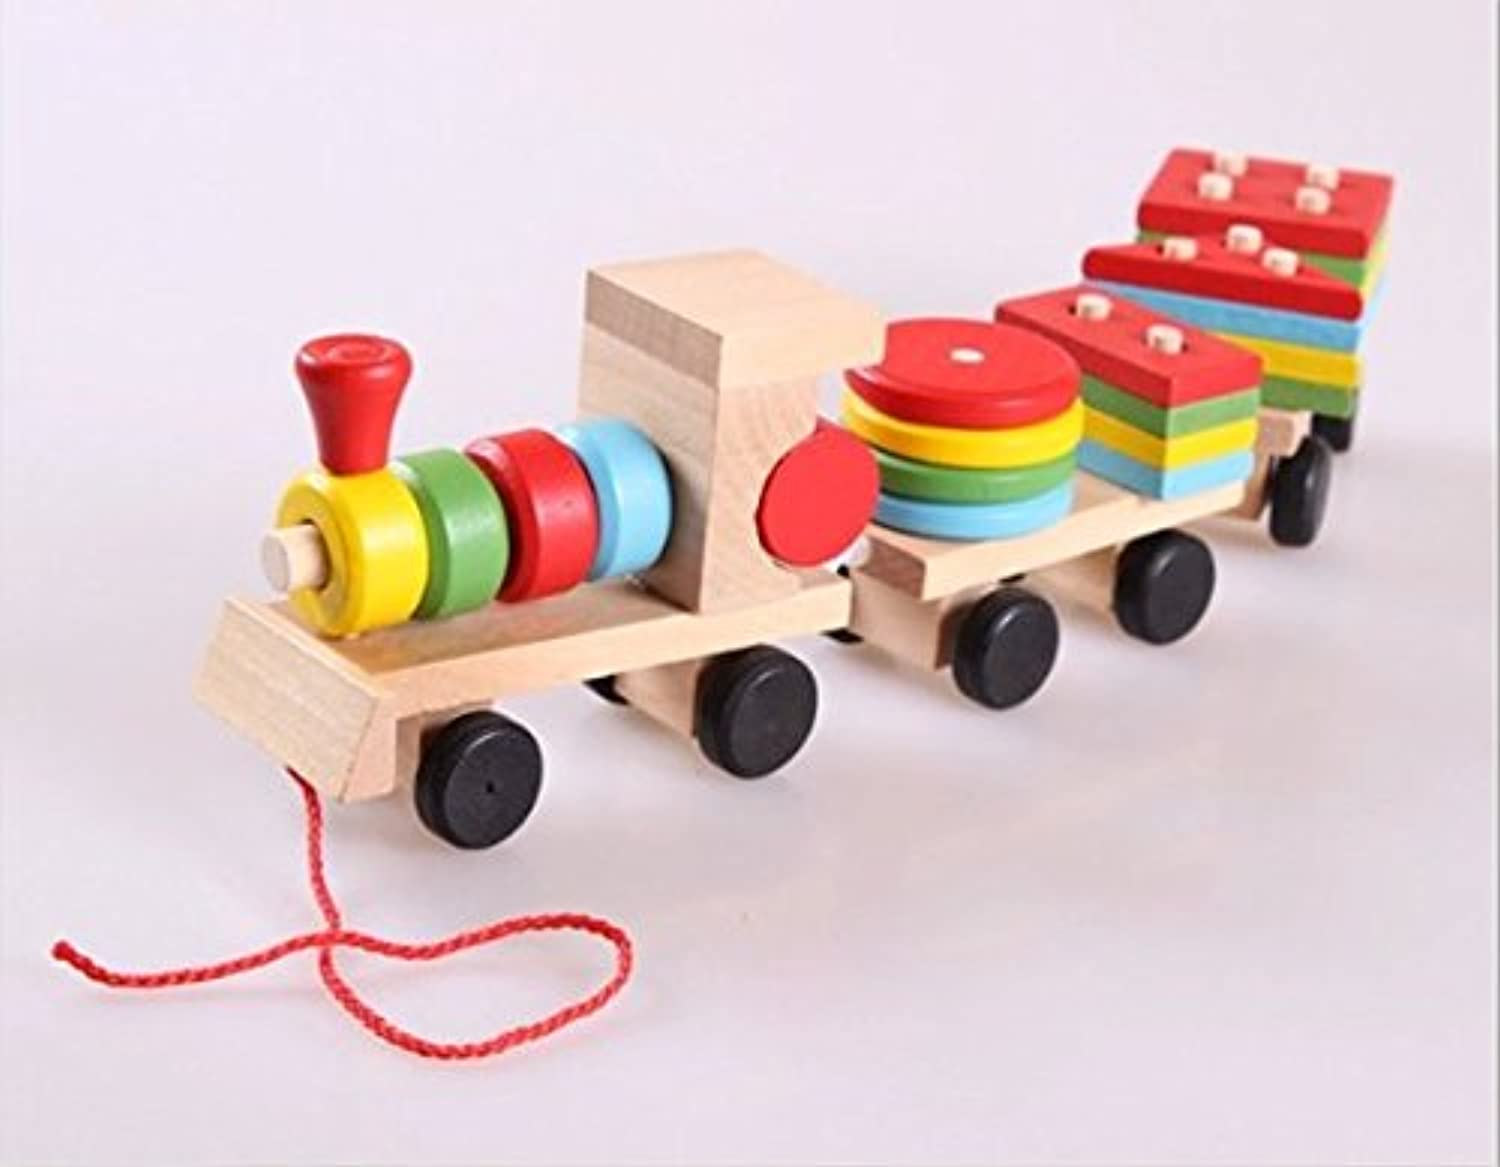 urtoysドラッグ3つデジタルSmall Wooden Train教育のセットTrains with Fun andカラフル幾何Figures and Stacking TrainペアリングDisassemblyの組み合わせ形状プルおもちゃ